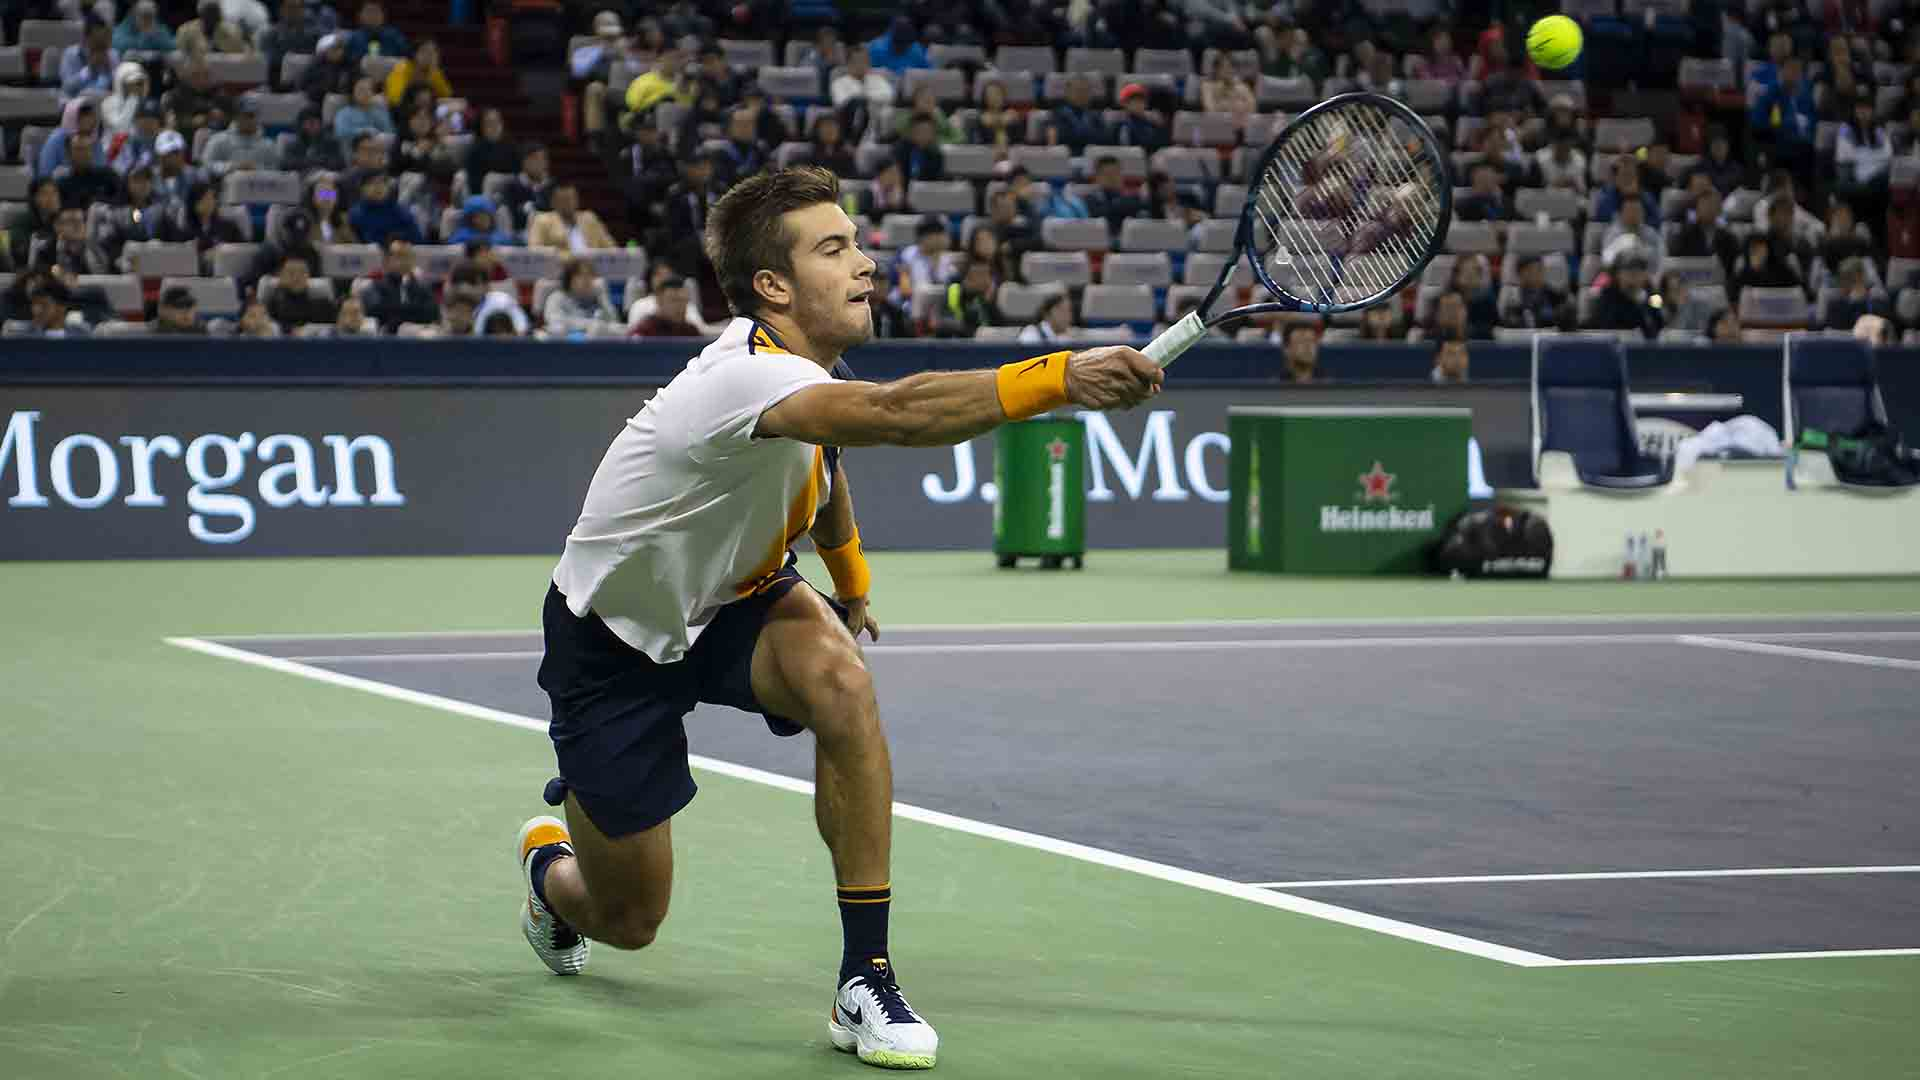 First Set: Coric 6-4  Can the 21-year-old record his second straight win over the defending champion in Shanghai? ���� https://t.co/gAmH9phTJg